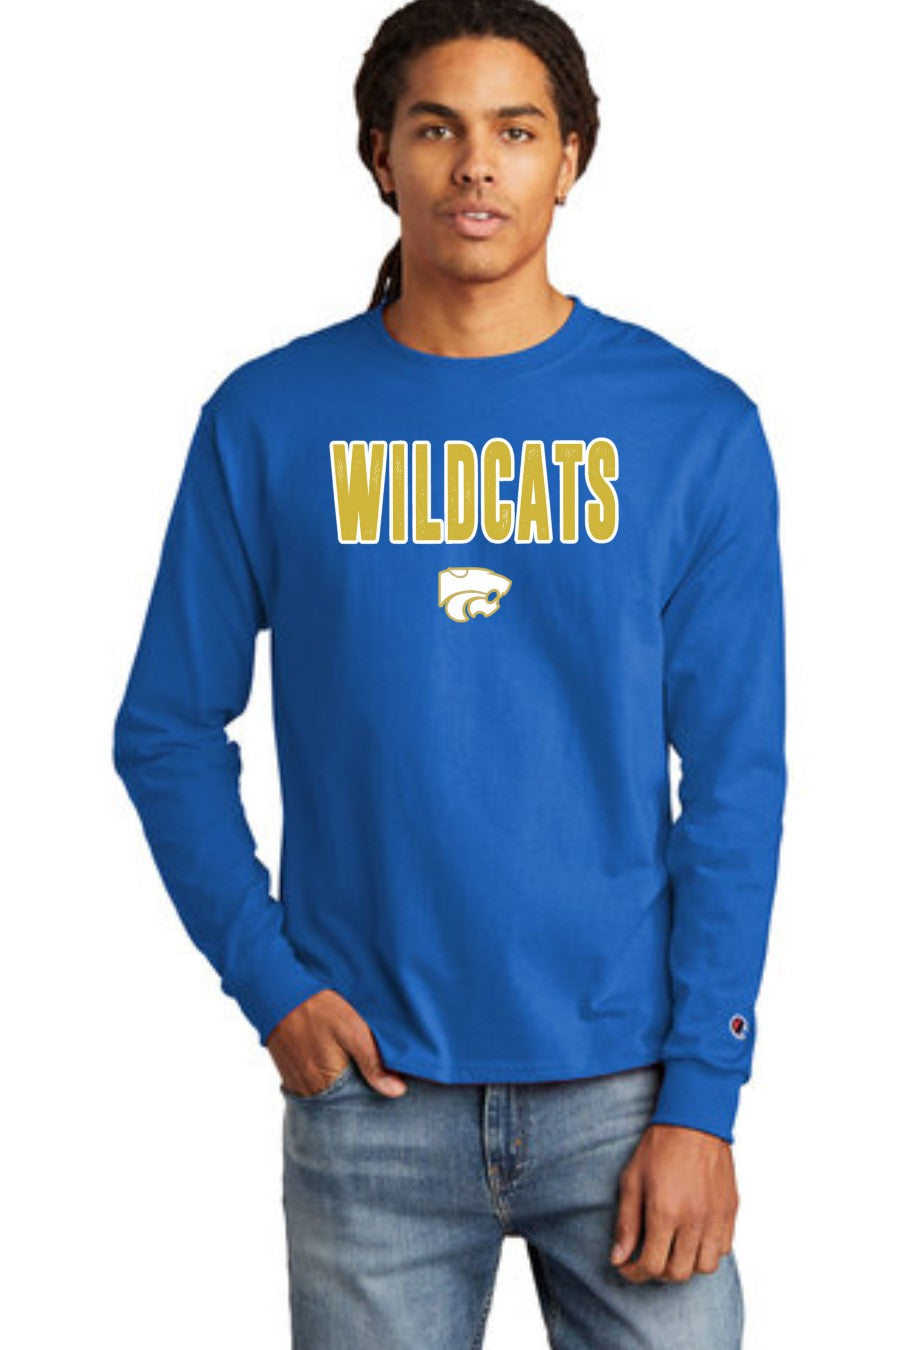 Wildcats - GOLD/WHITE - Champion Long Sleeve